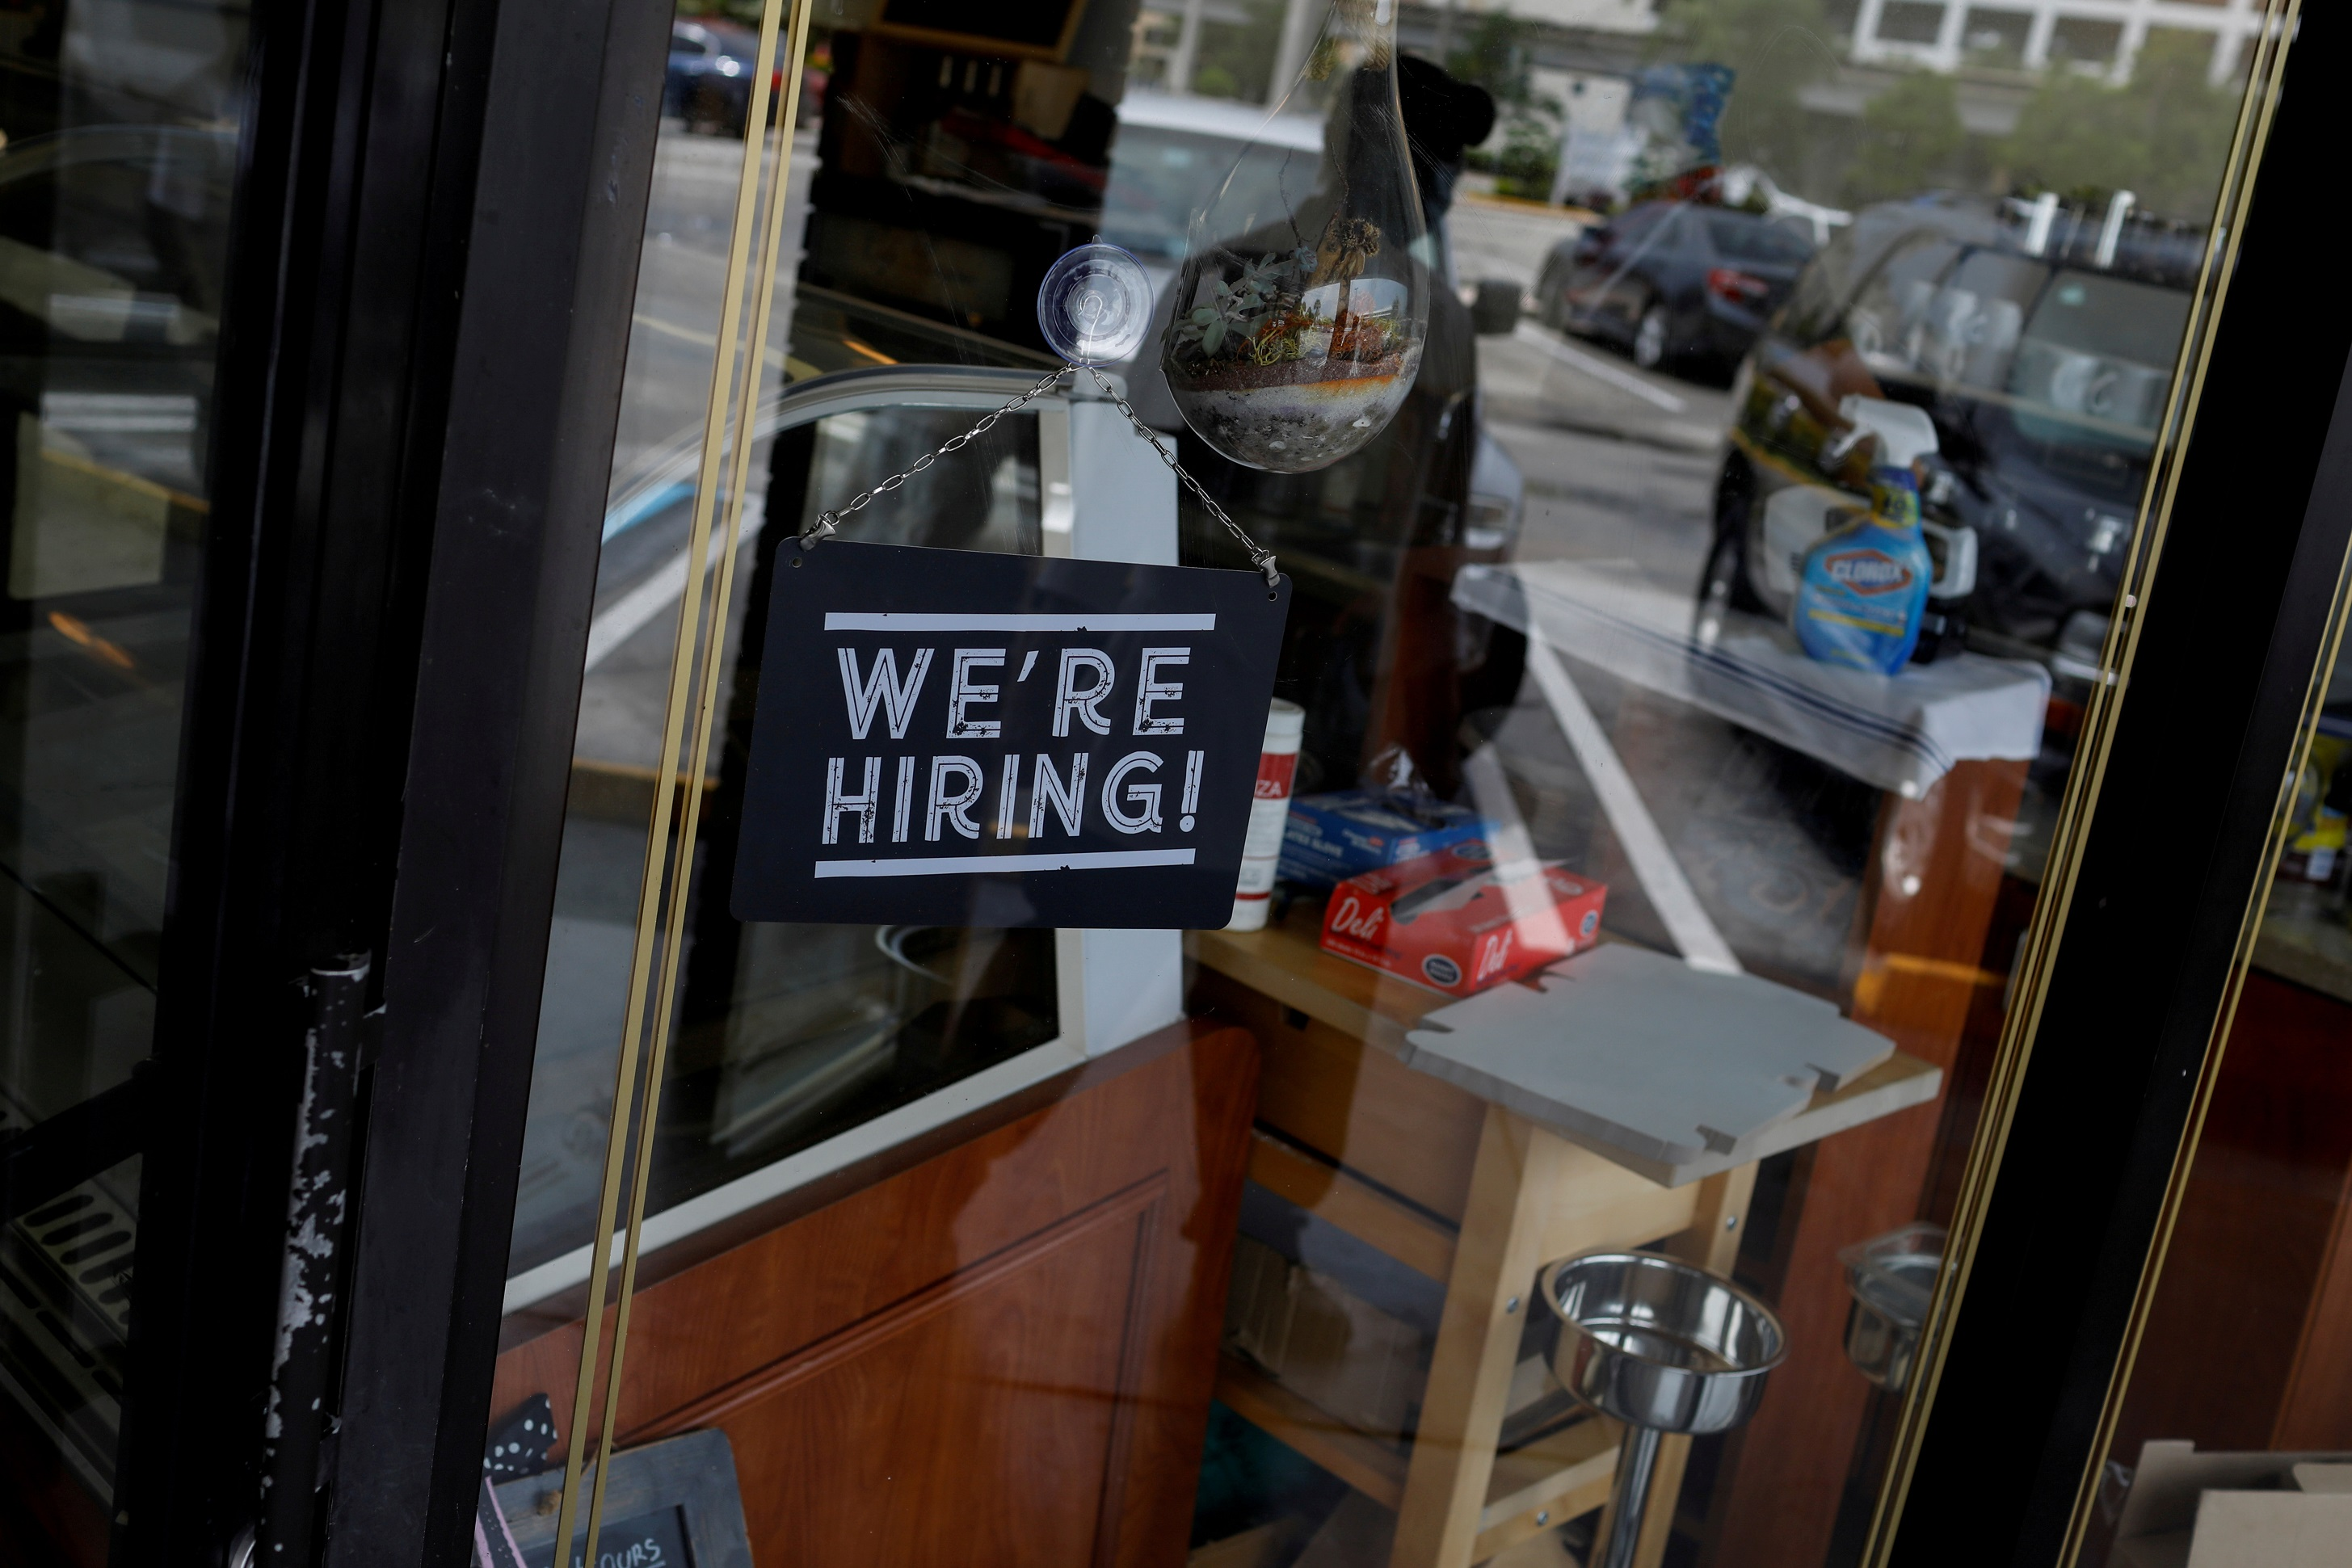 """FILE PHOTO: A """"We're Hiring"""" sign advertising jobs is seen at the entrance of a restaurant in Miami, Florida, U.S., May 18, 2020. REUTERS/Marco Bello/File Photo"""